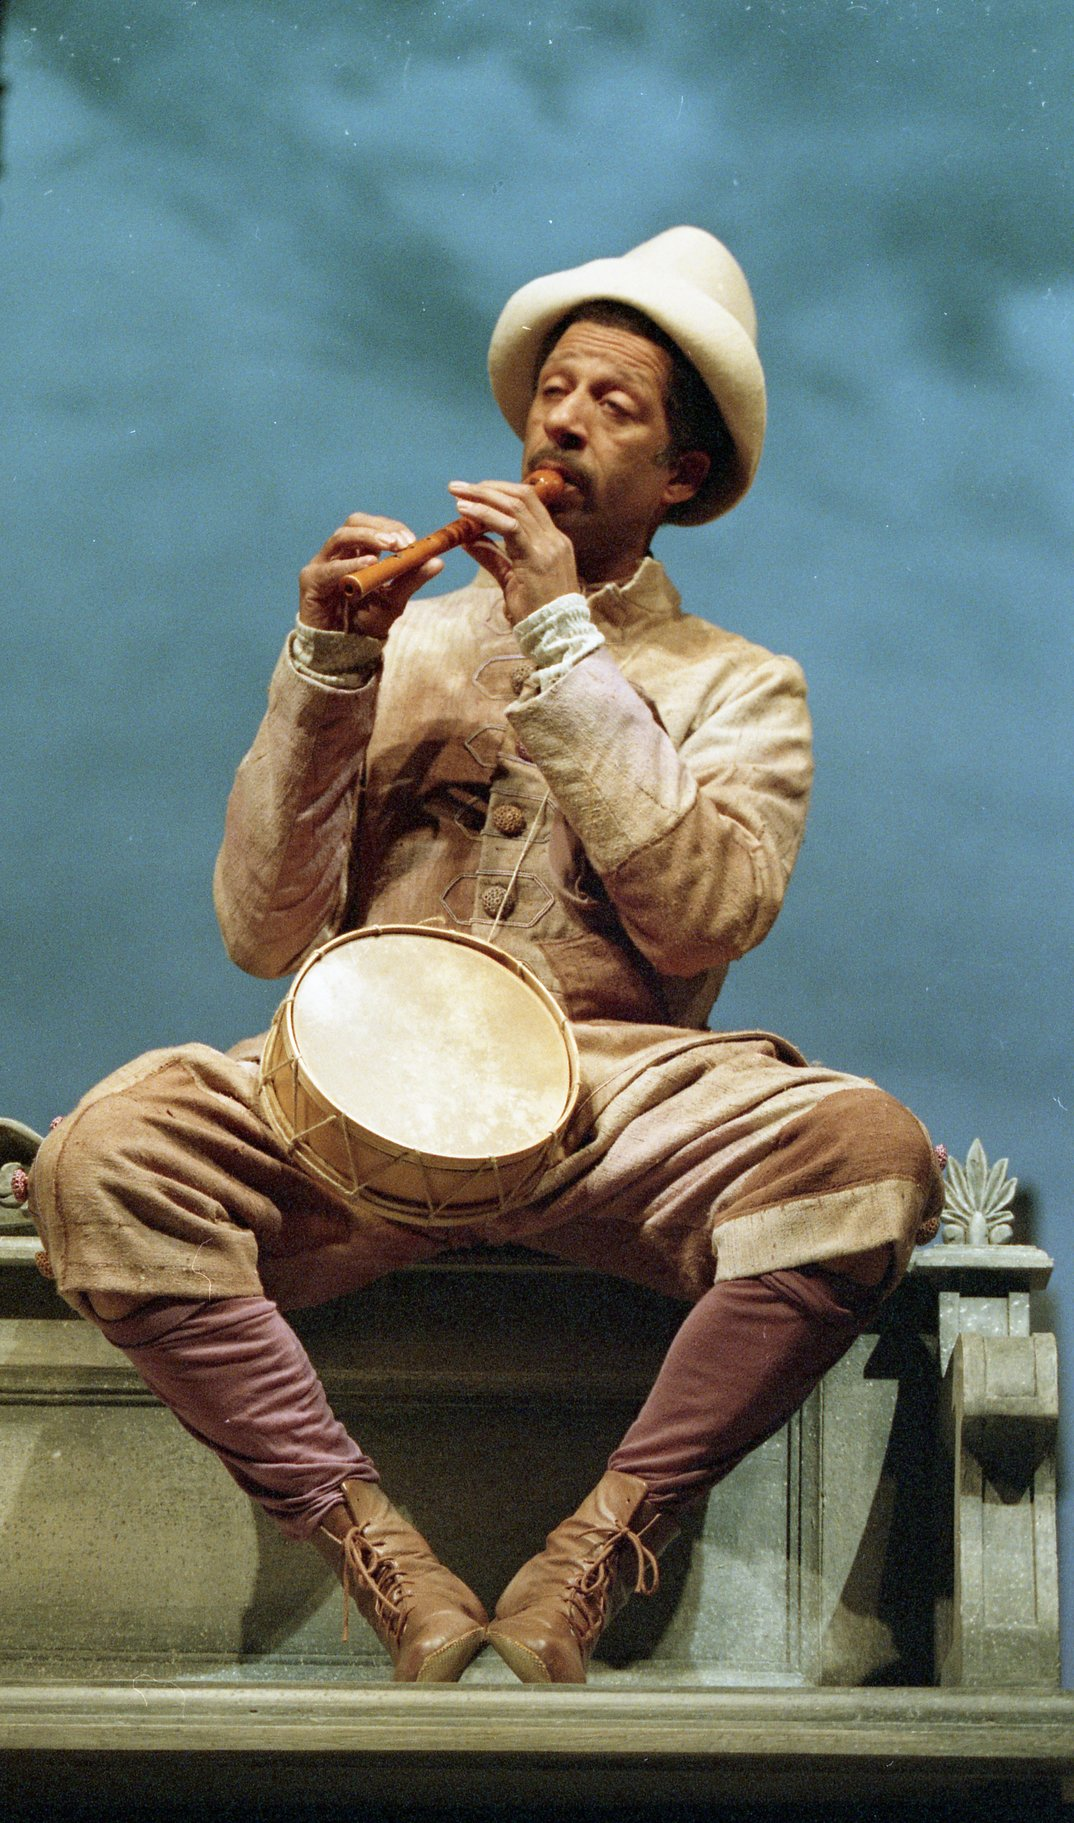 Feste sits, playing a pipe. A drum sits in his lap.